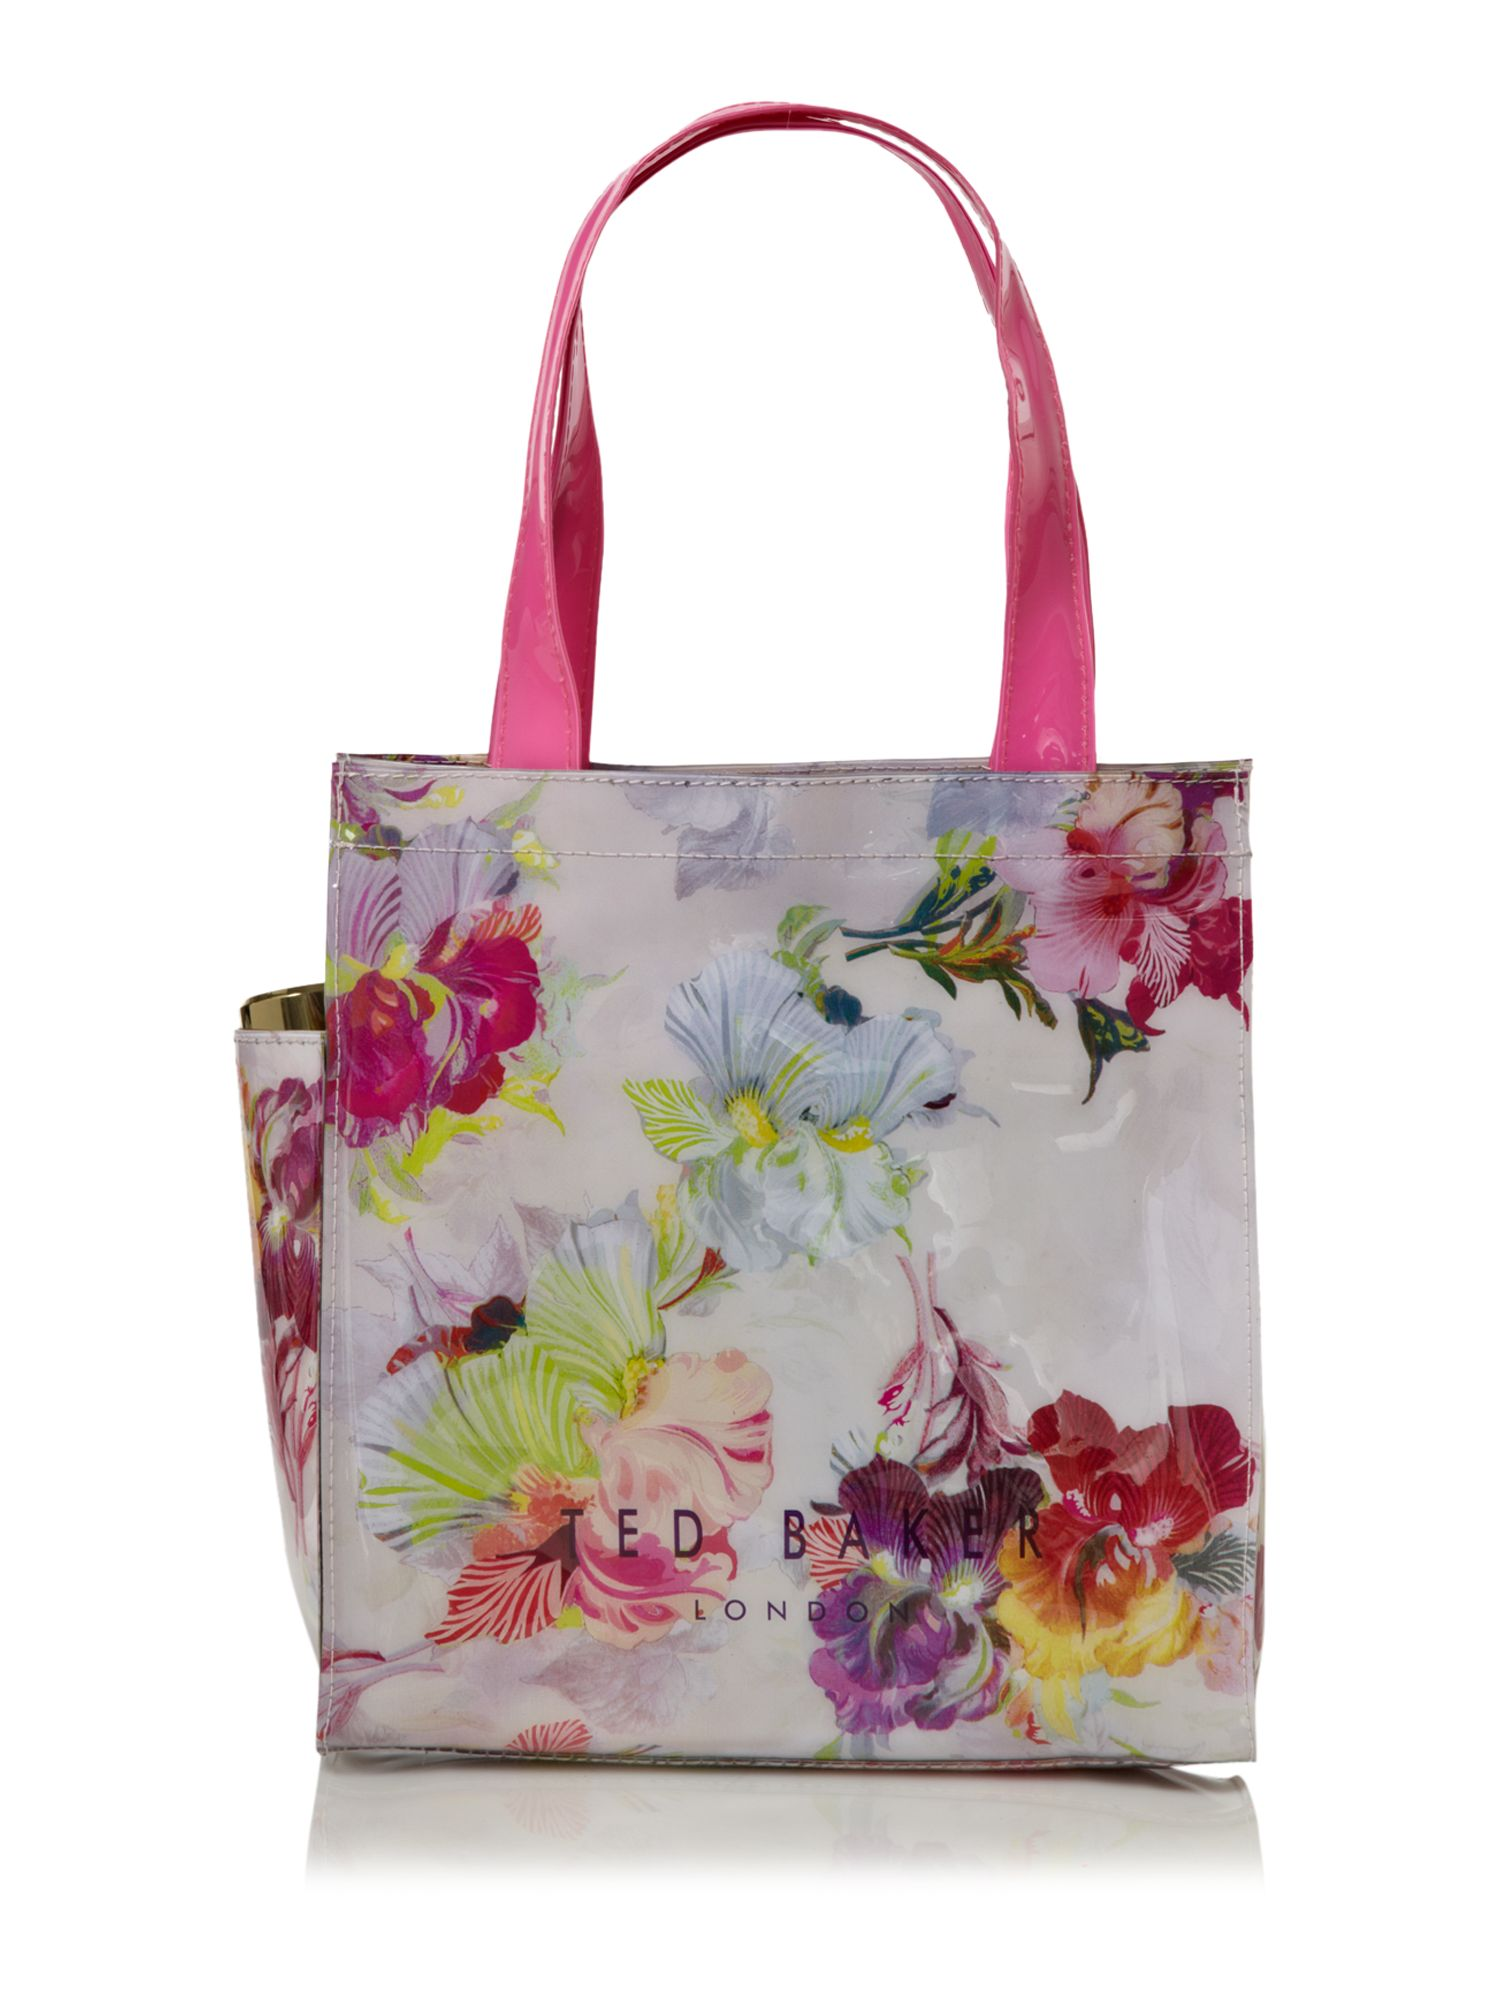 Ted Baker Bowcon Floral Tote Bag | Lyst